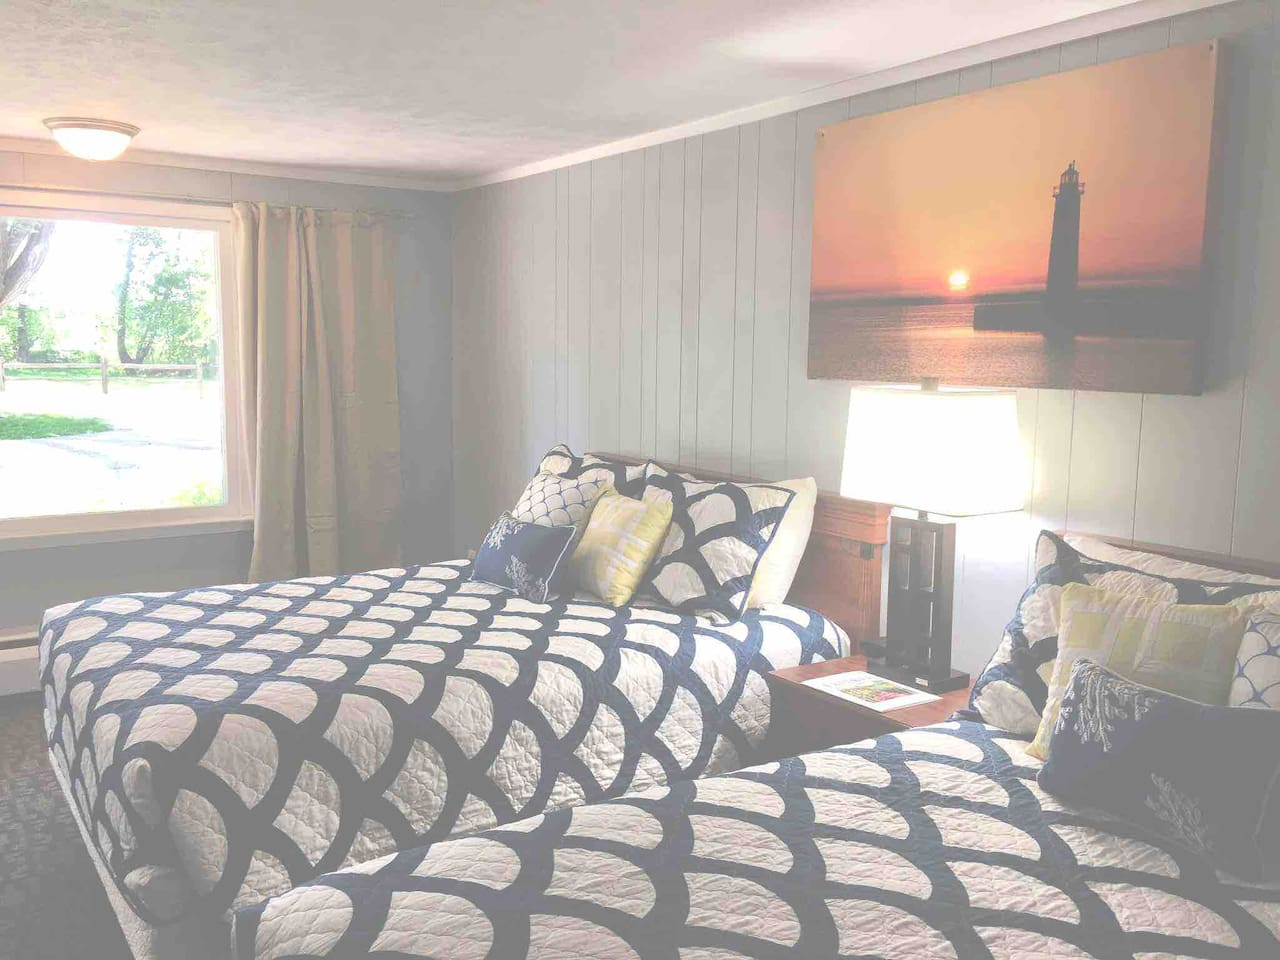 Deluxe 2 Queen Bed. Comes standard with 250 thread count sheets, flat screen tv, wifi, cable, full bath, mini fridge, microwave, coffee maker, blow dryer and spa toiletries.